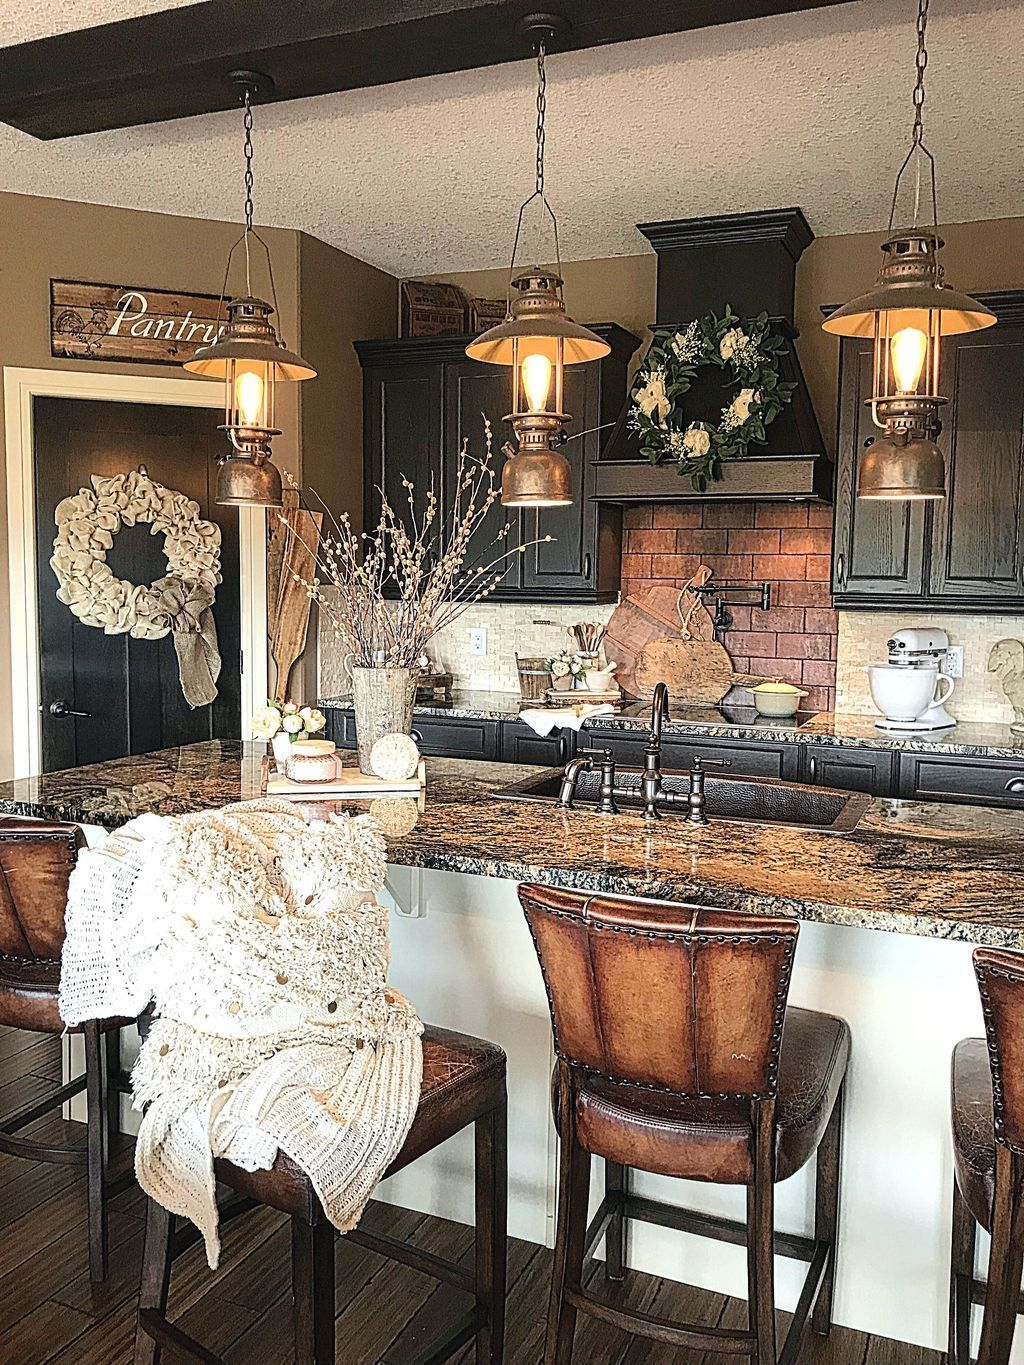 47 Comfy Rustic Winter Kitchen Ideas After Christmas | Home Decor